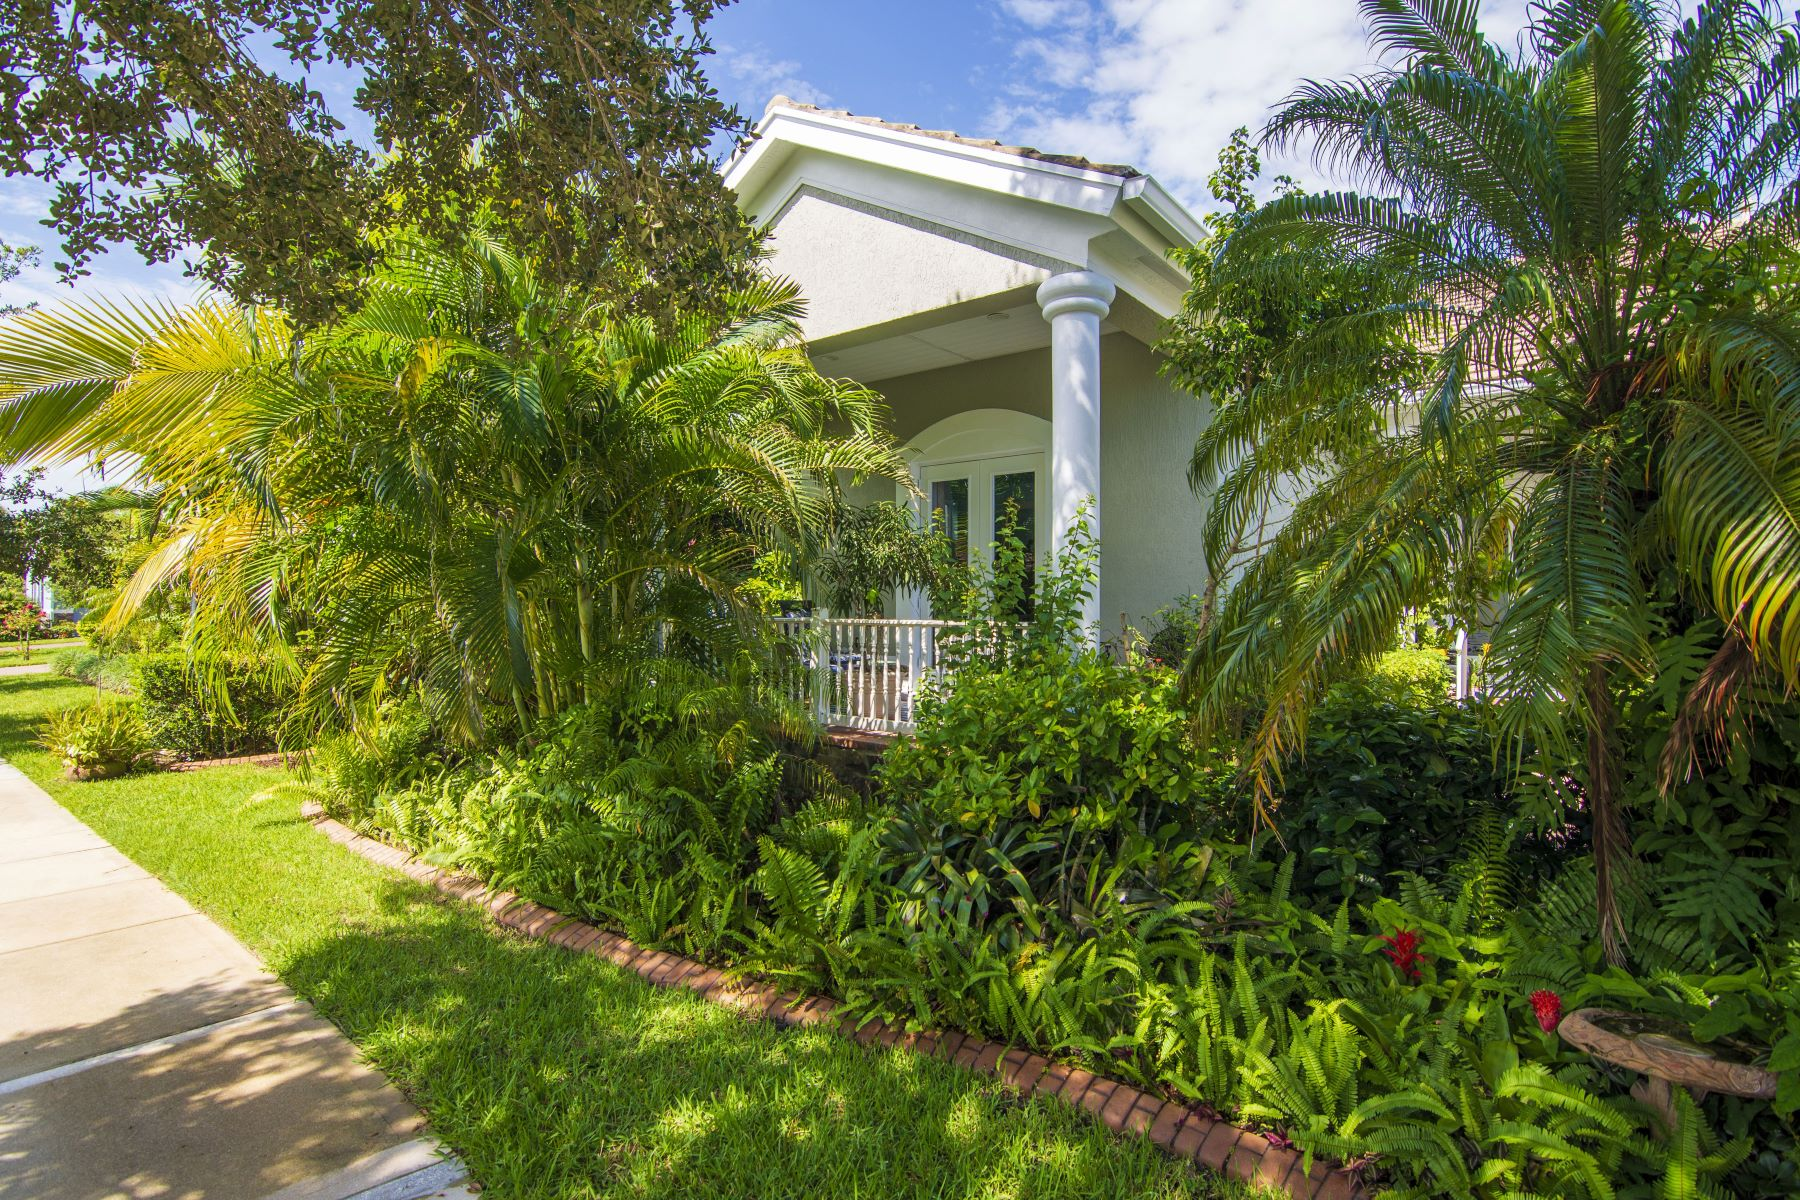 Single Family Homes for Sale at 1325 S Village Square, Vero Beach, FL 1325 S Village Square Vero Beach, Florida 32966 United States